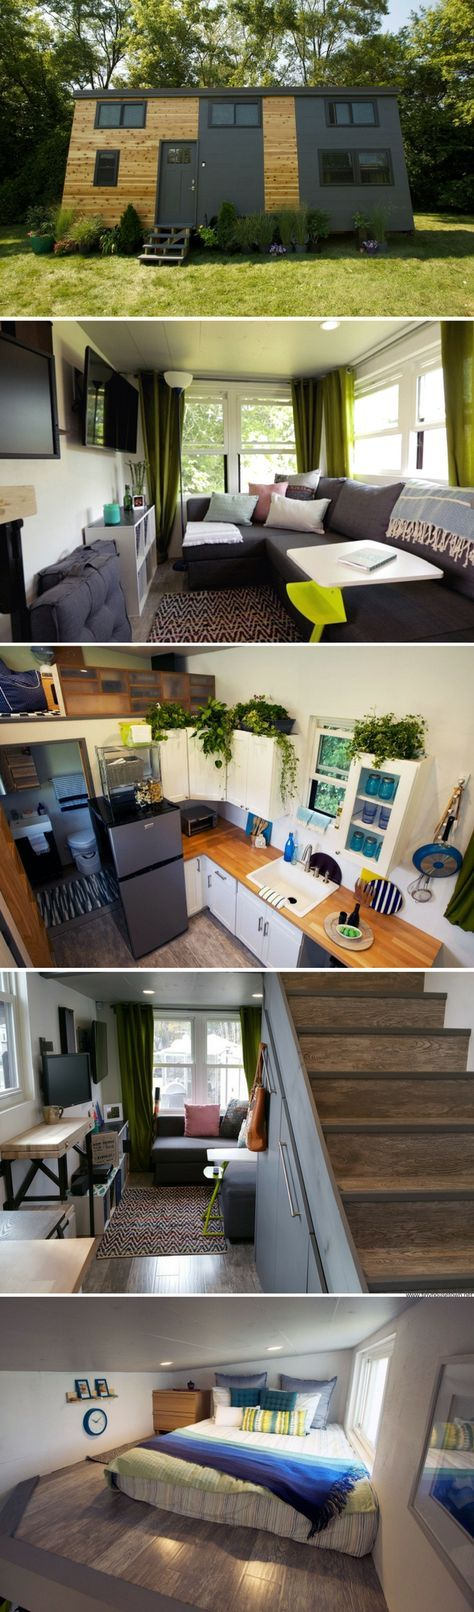 The Smart House: a 303 sq ft tiny home that was featured on Tiny House NationGay Kennedy